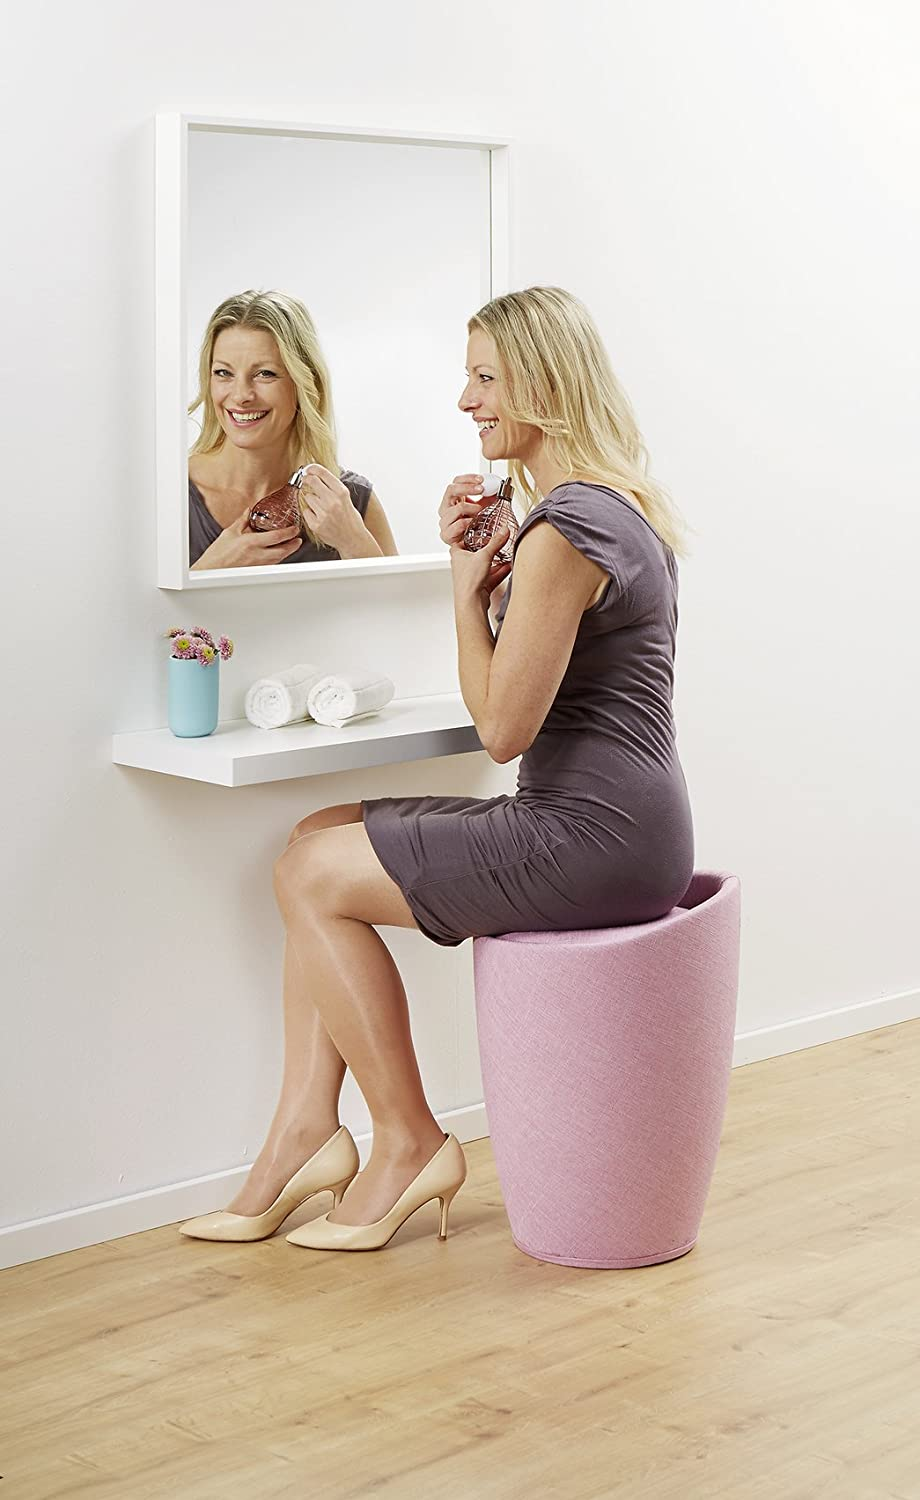 Wenko Bathroom stool Candy with linen look in beige, Polyester, 36 x 36 x 50.5 cm Pink